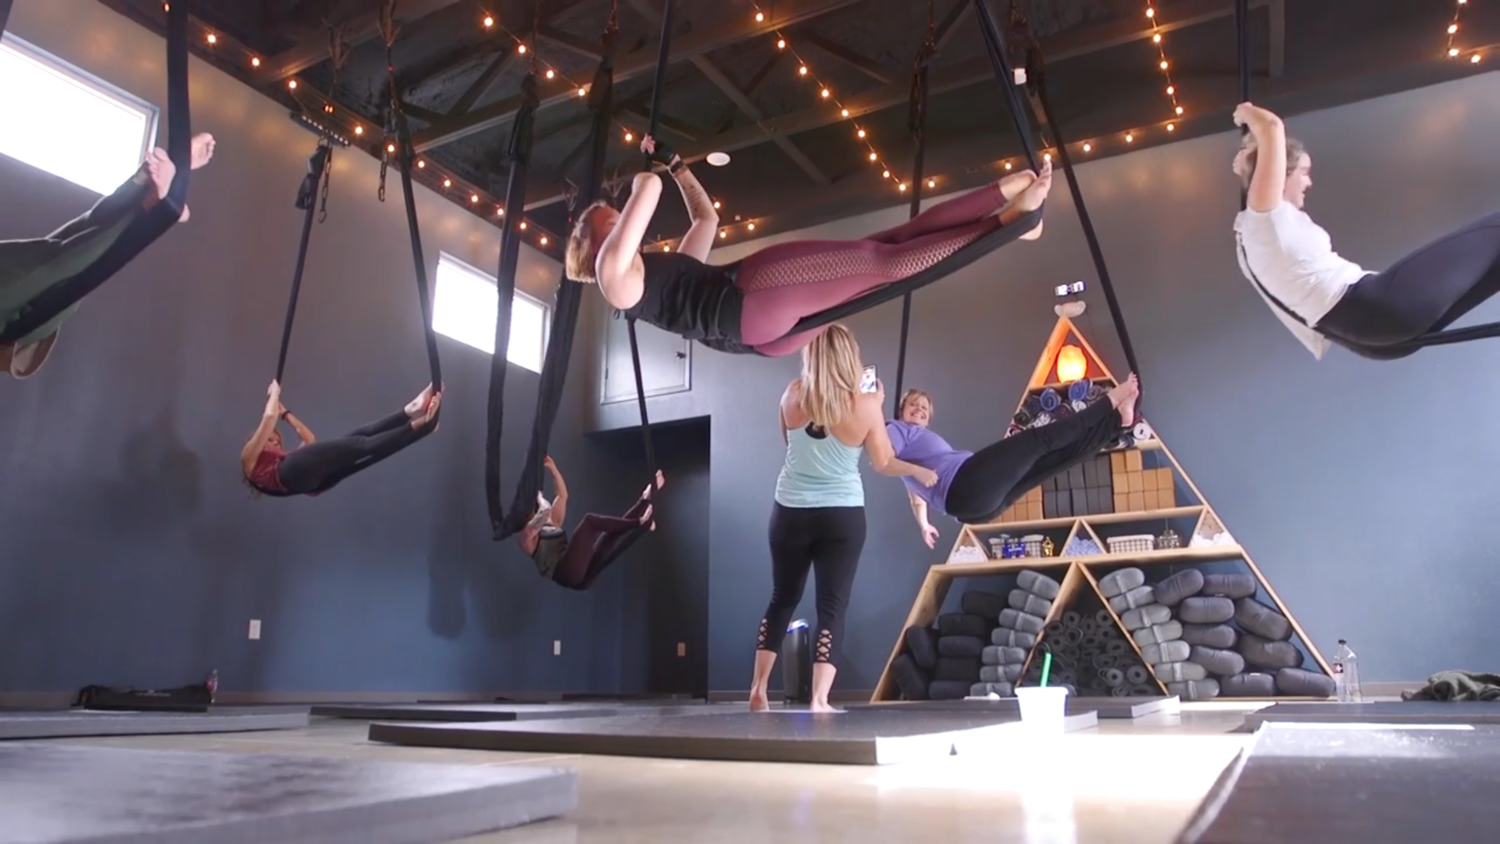 $225 - 60 Minute Private Group Aerial Yoga Session(Up to 12 People)